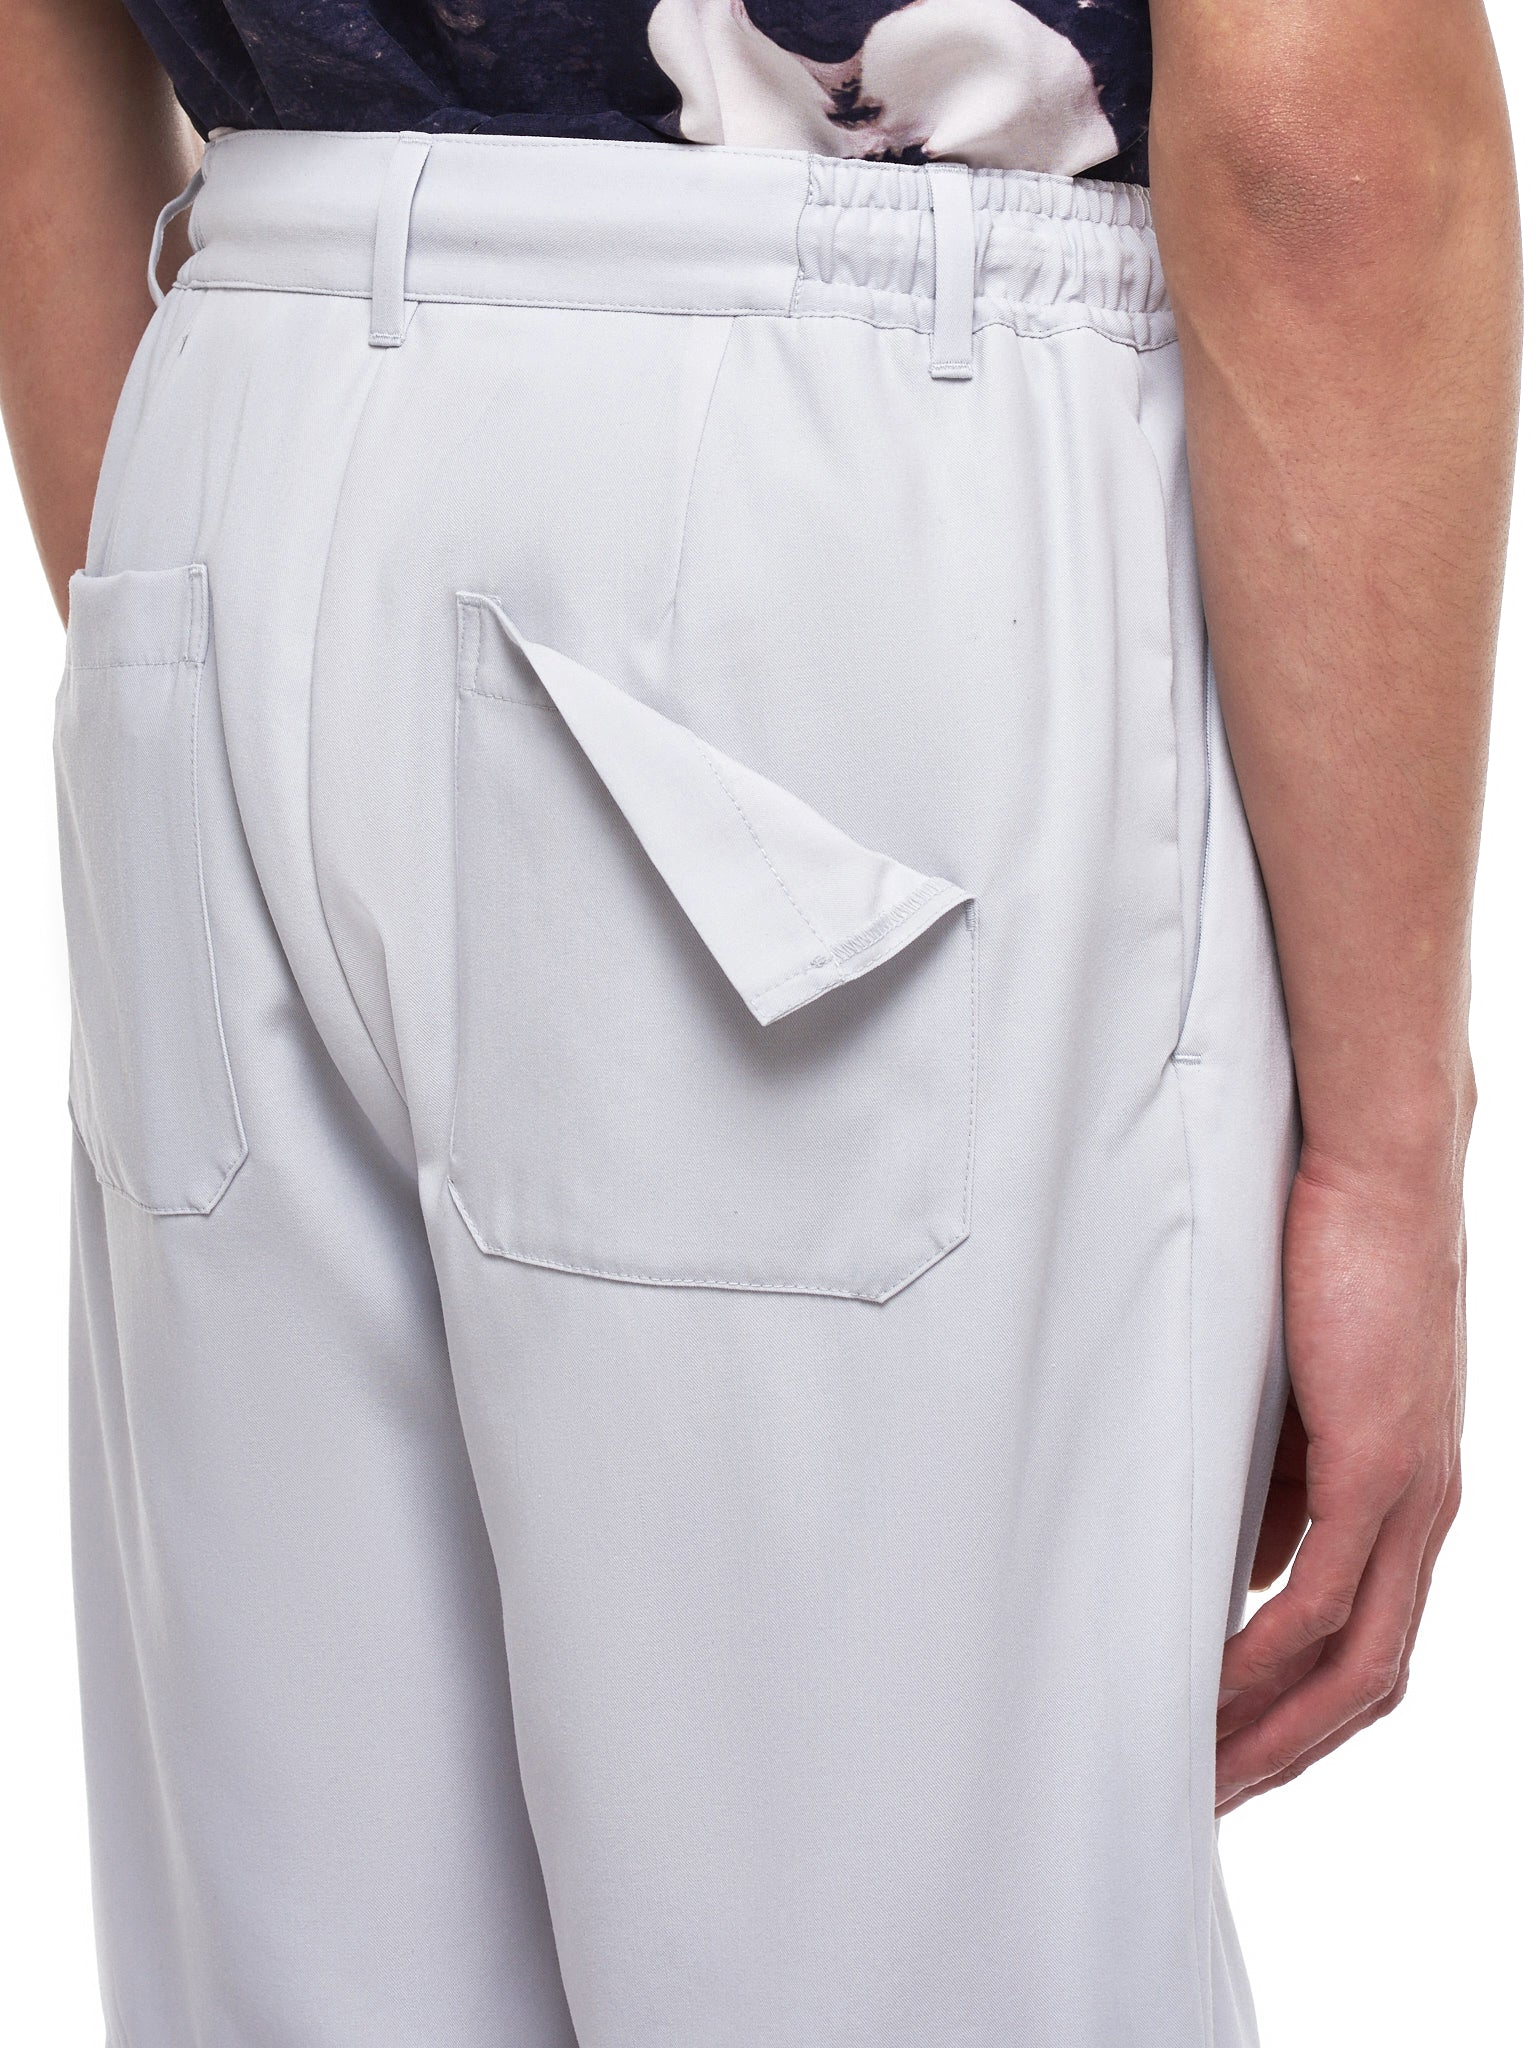 Christian Dada Shorts - Hlorenzo Detail 2